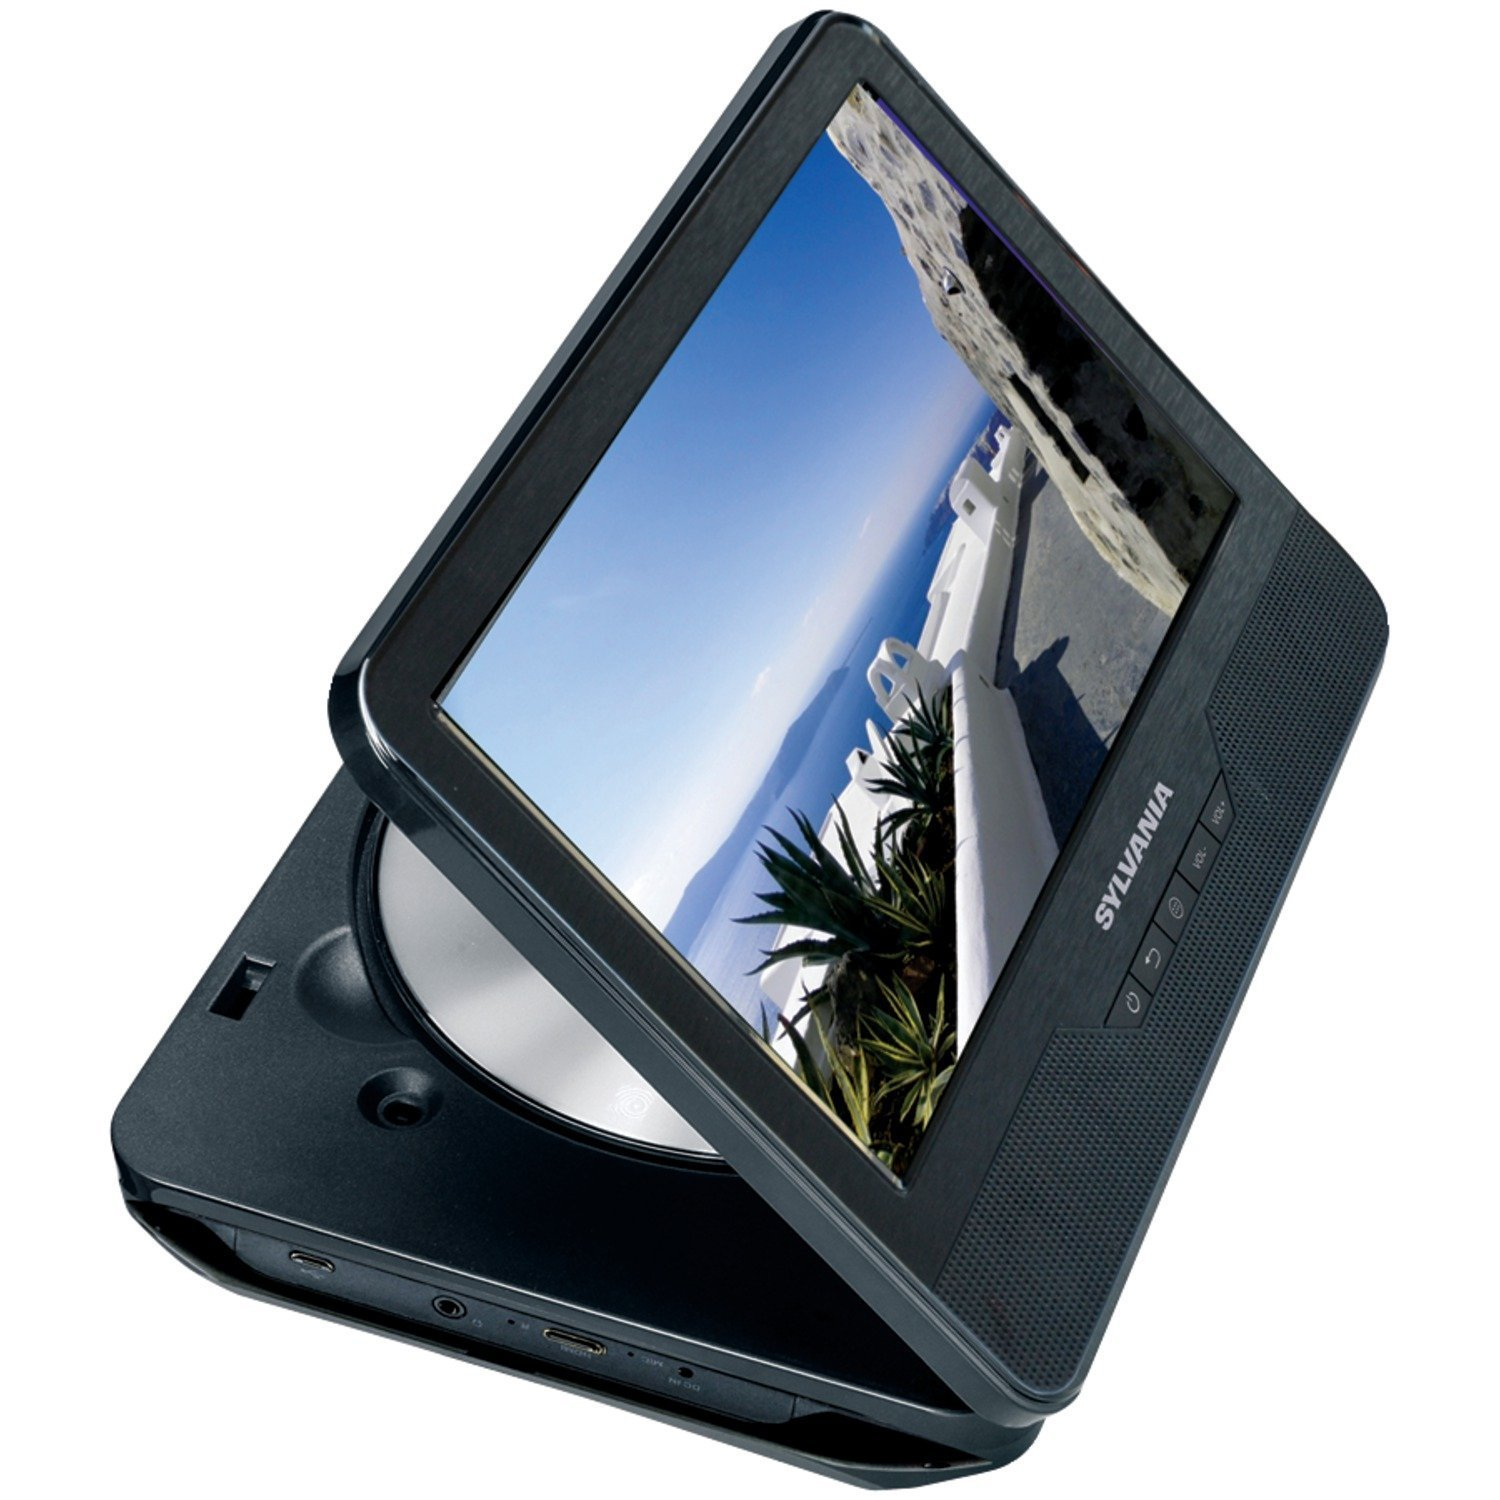 Sylvania SLTDVD9220 3-in-1 9-Inch Touchscreen Tablet, Portable DVD Player and DVD Combo with Android, 1.2GHz Quad Core